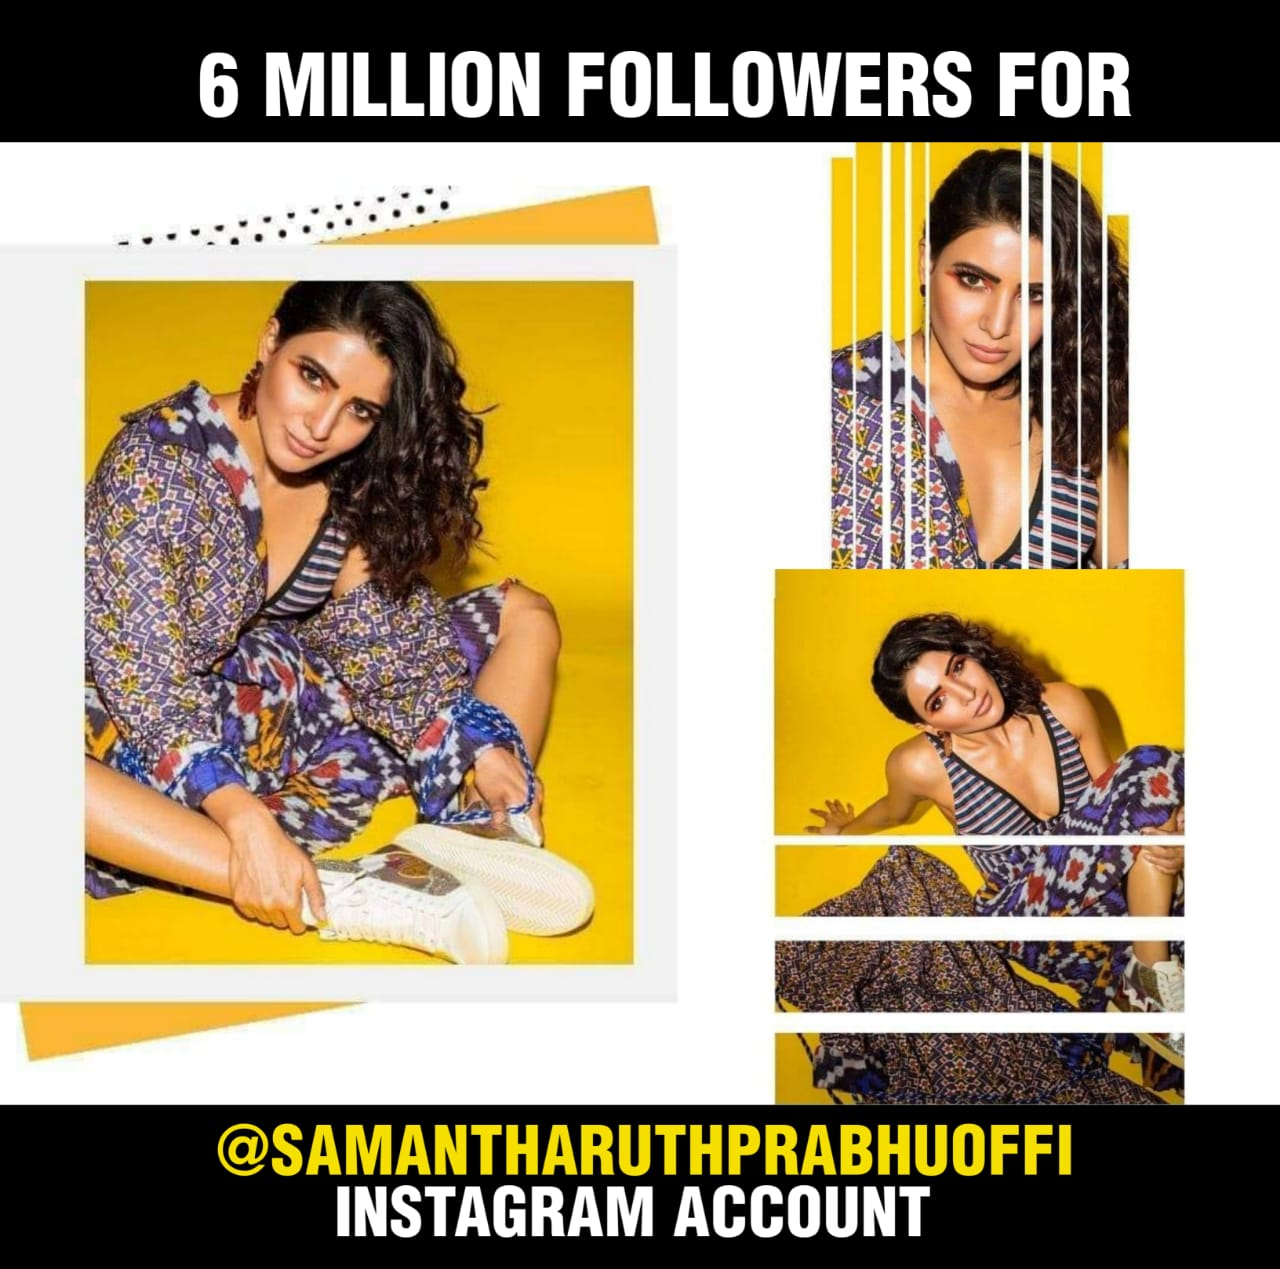 Six Million Followers For Samantha On Instagram